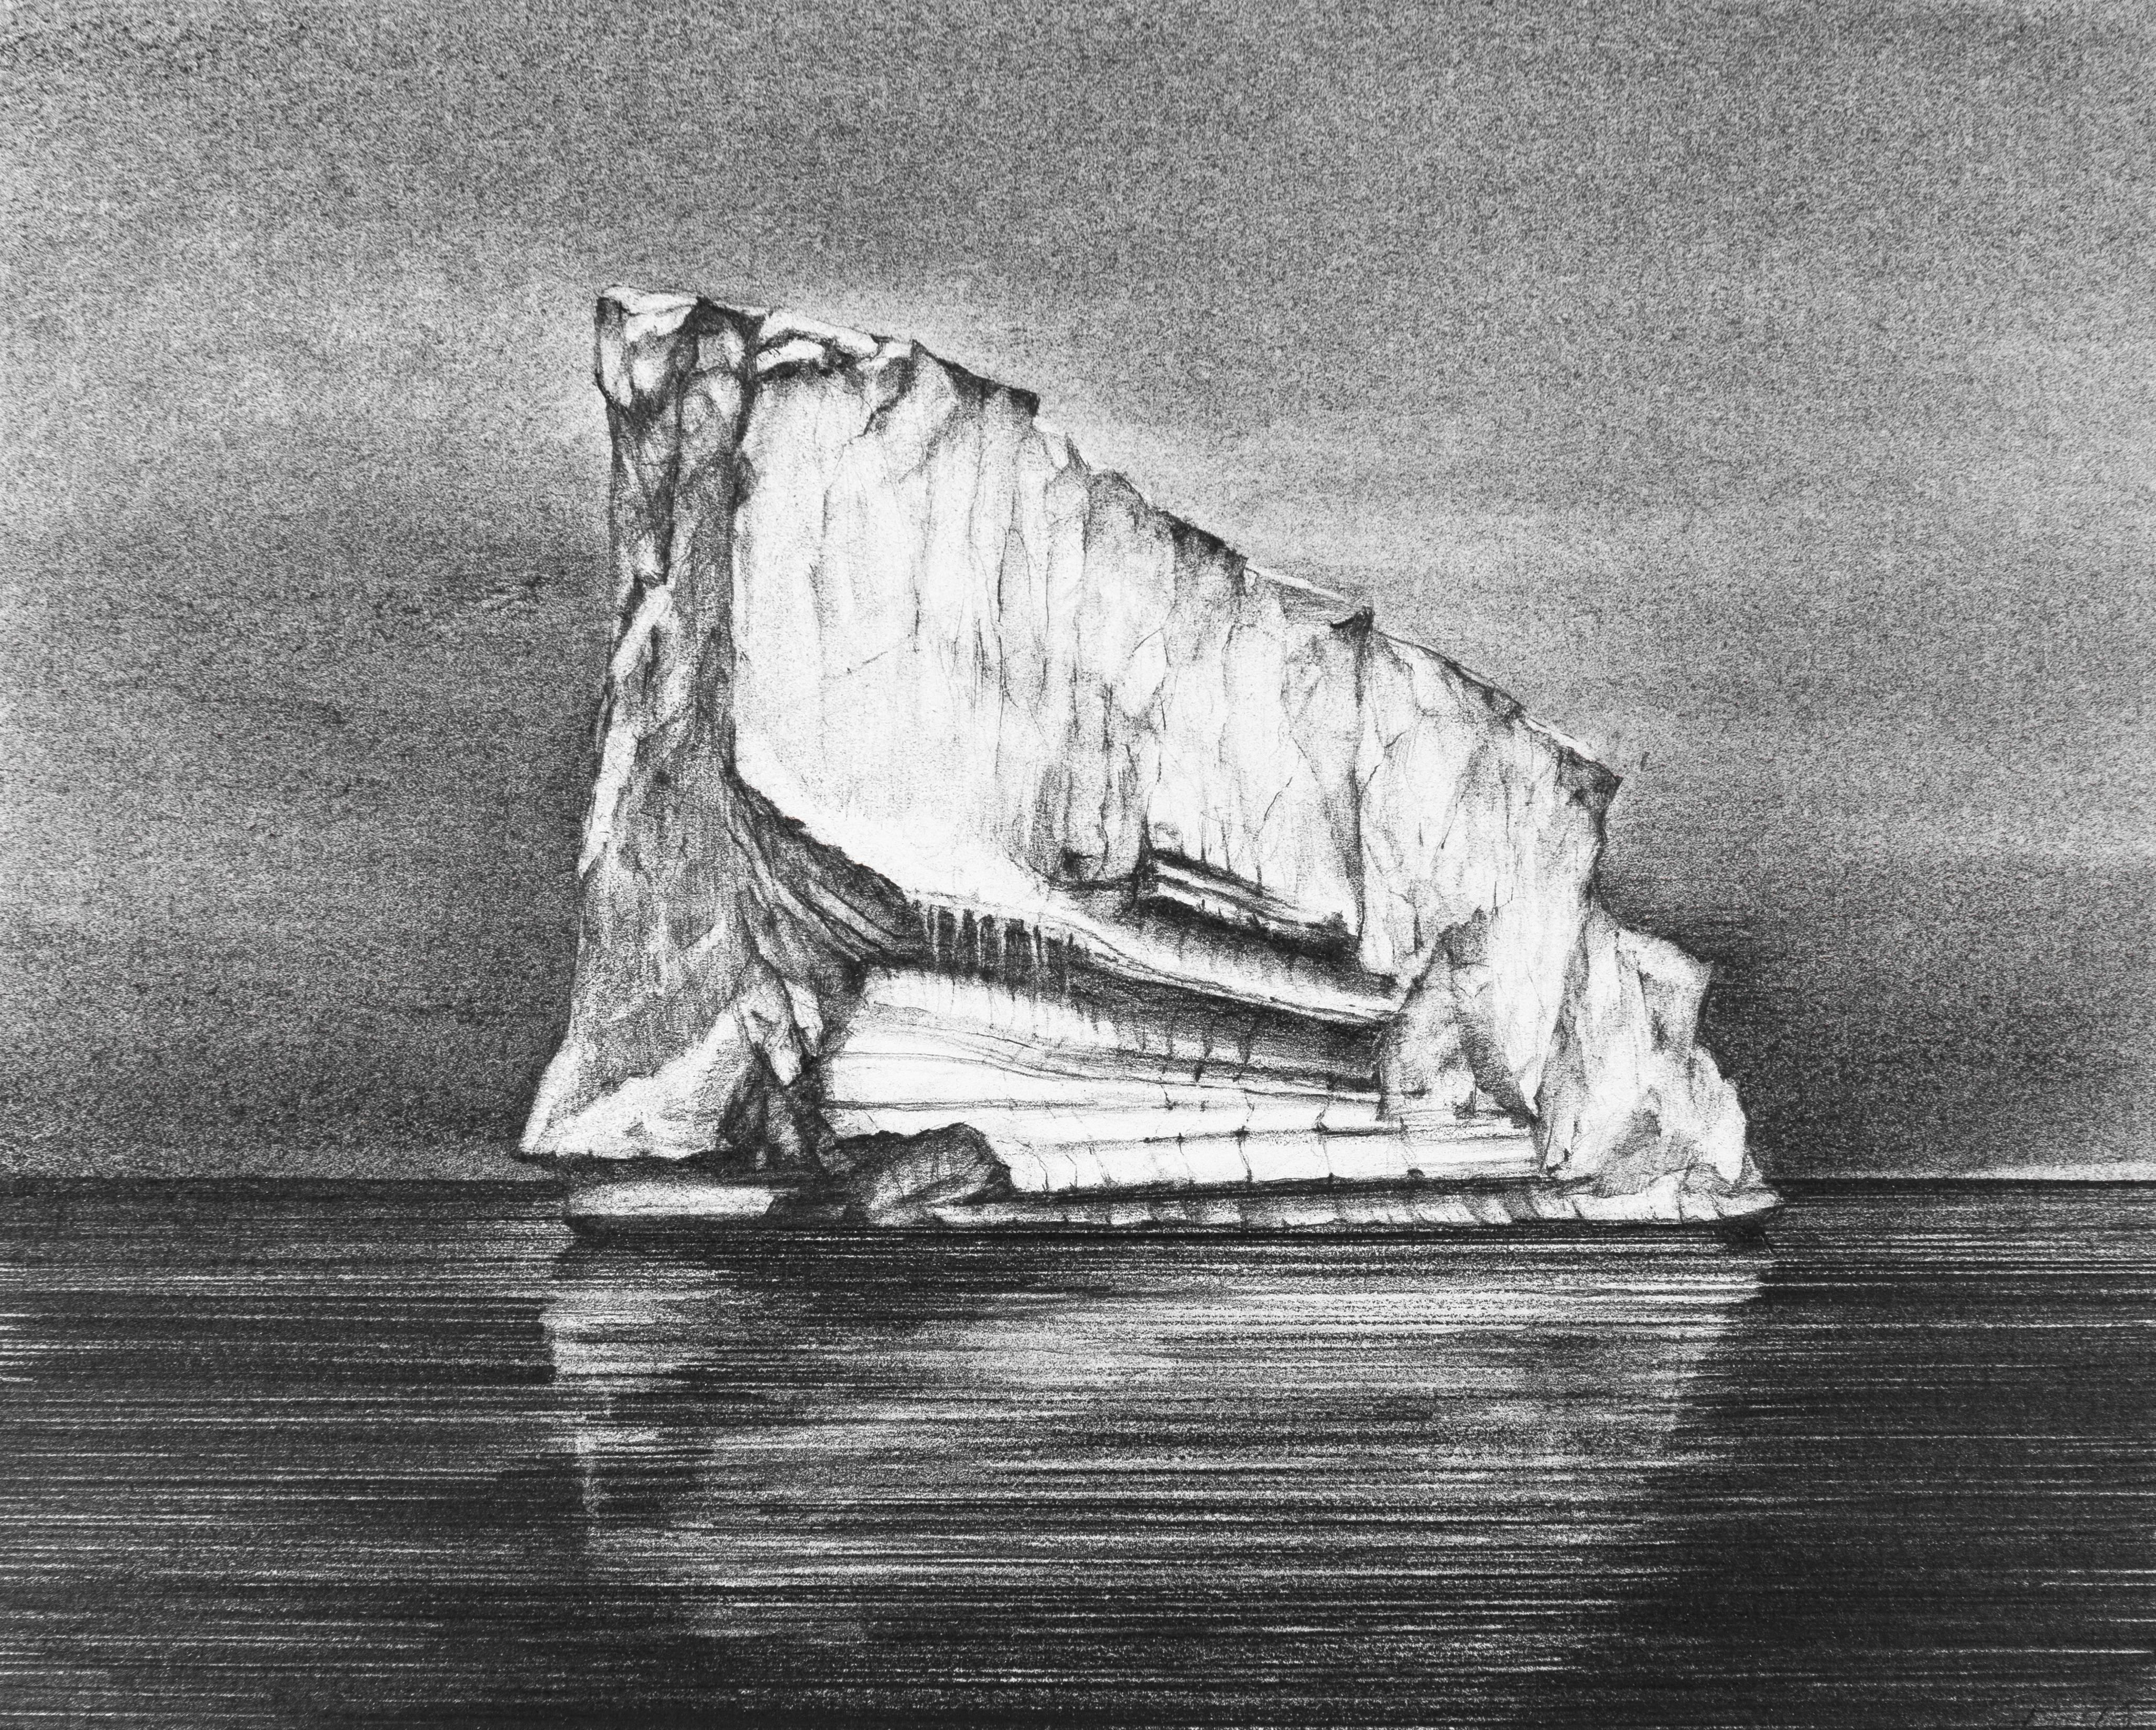 Iceberg Drawing 2: Black and White Landscape Drawing of Iceberg in Water, Framed